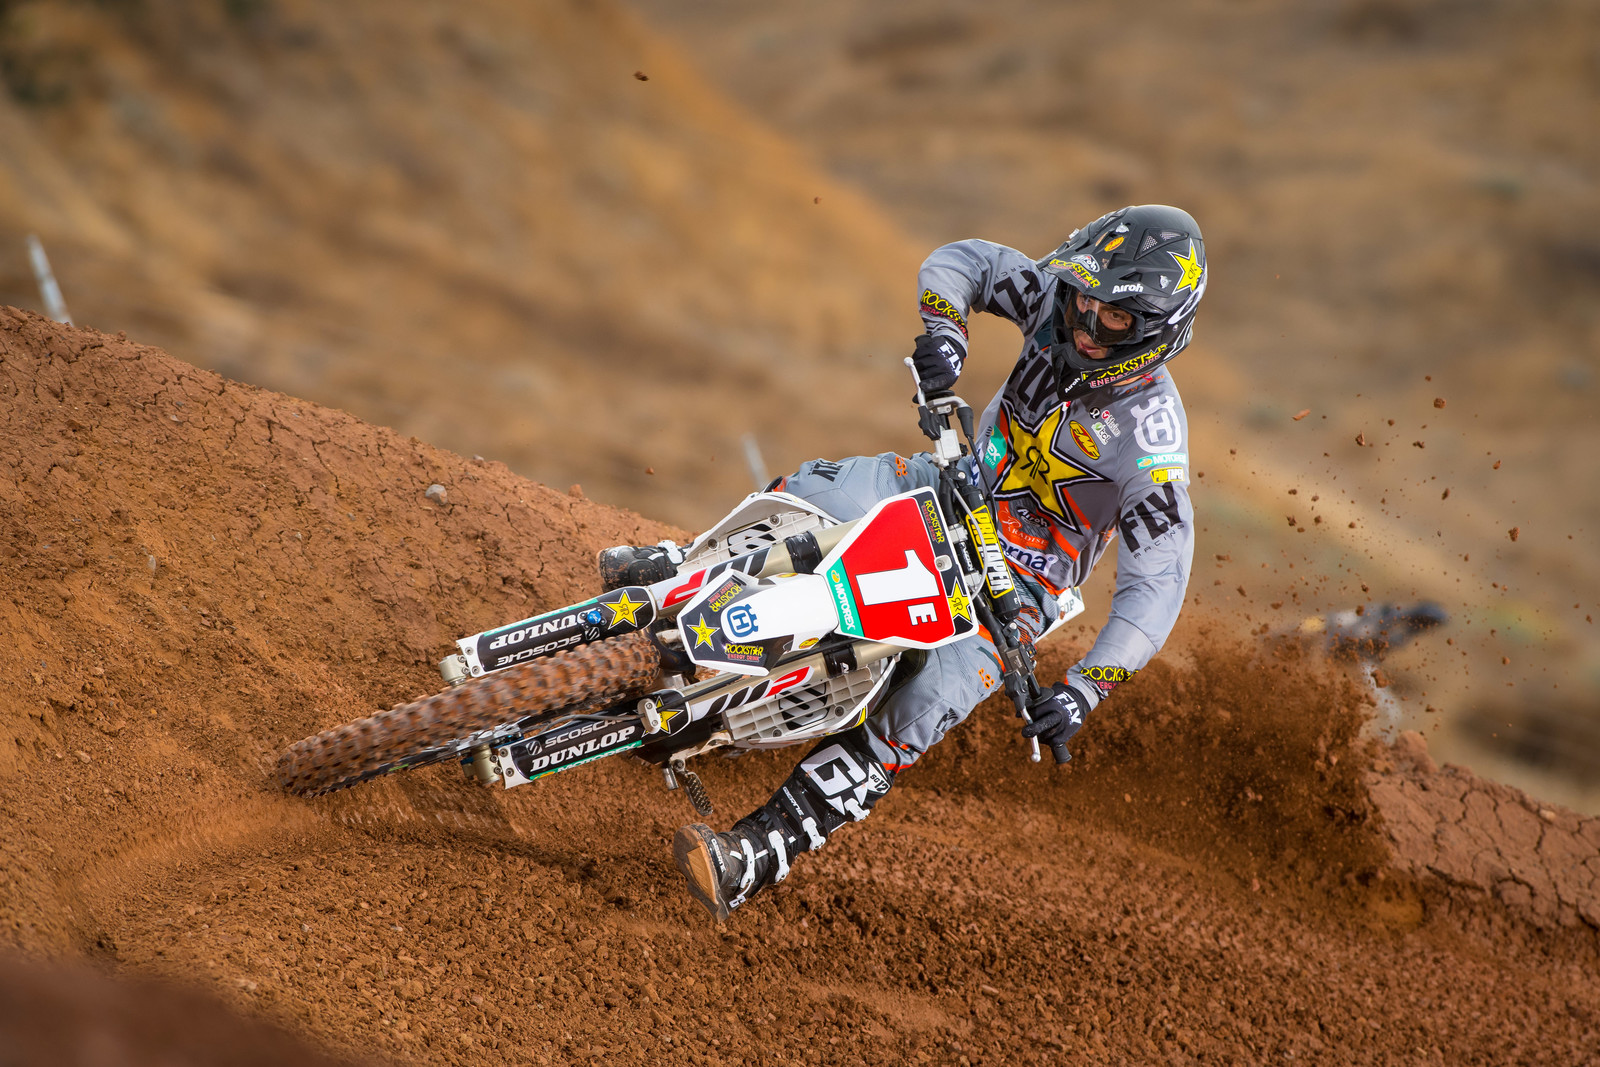 Zach Osborne Signs Contract Extension Through 2020 with Rockstar Energy Husqvarna